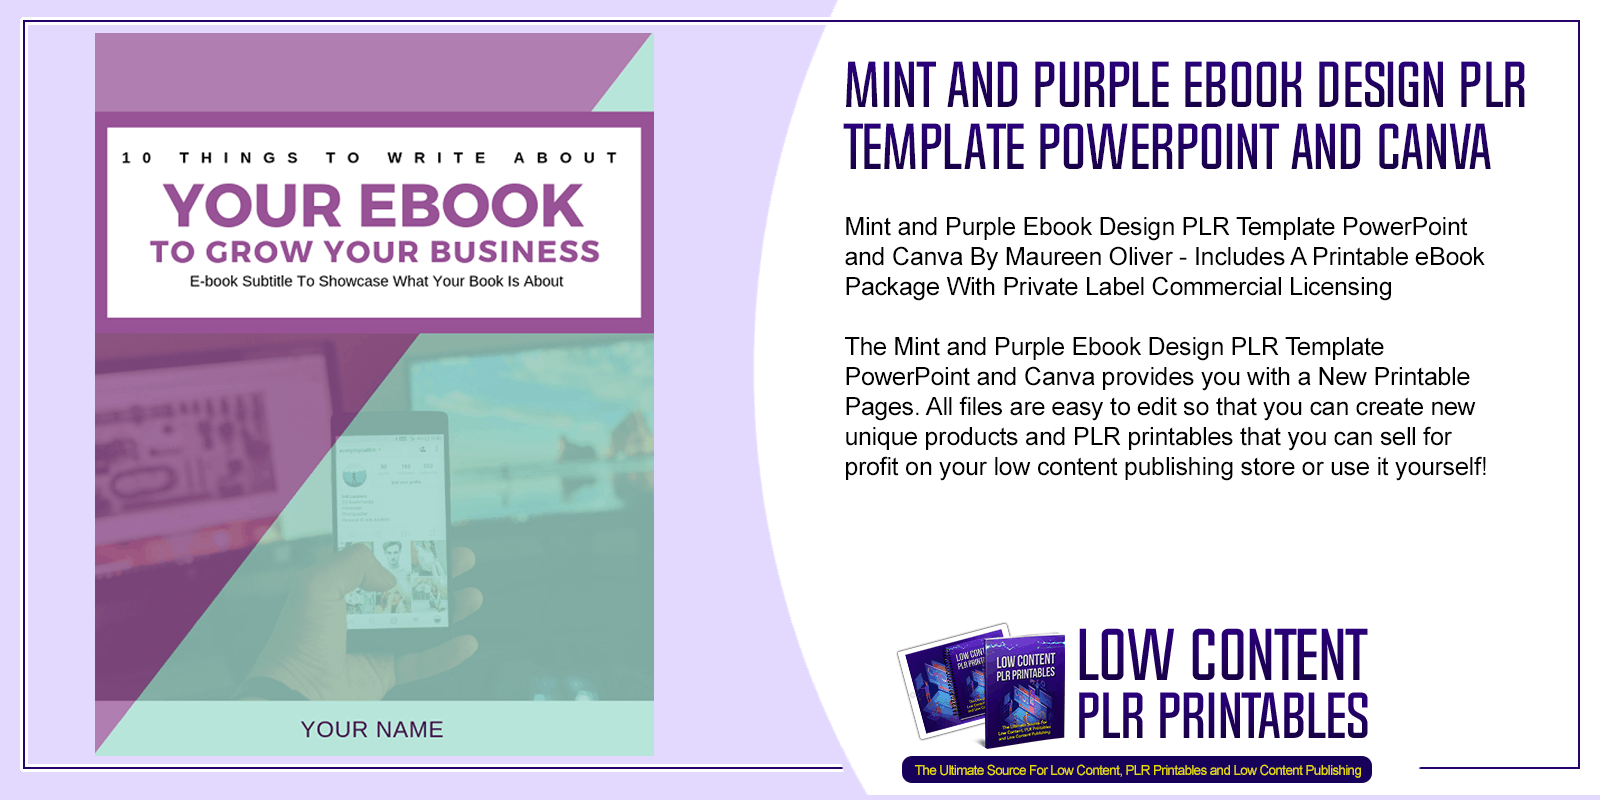 Mint and Purple Ebook Design PLR Template PowerPoint and Canva